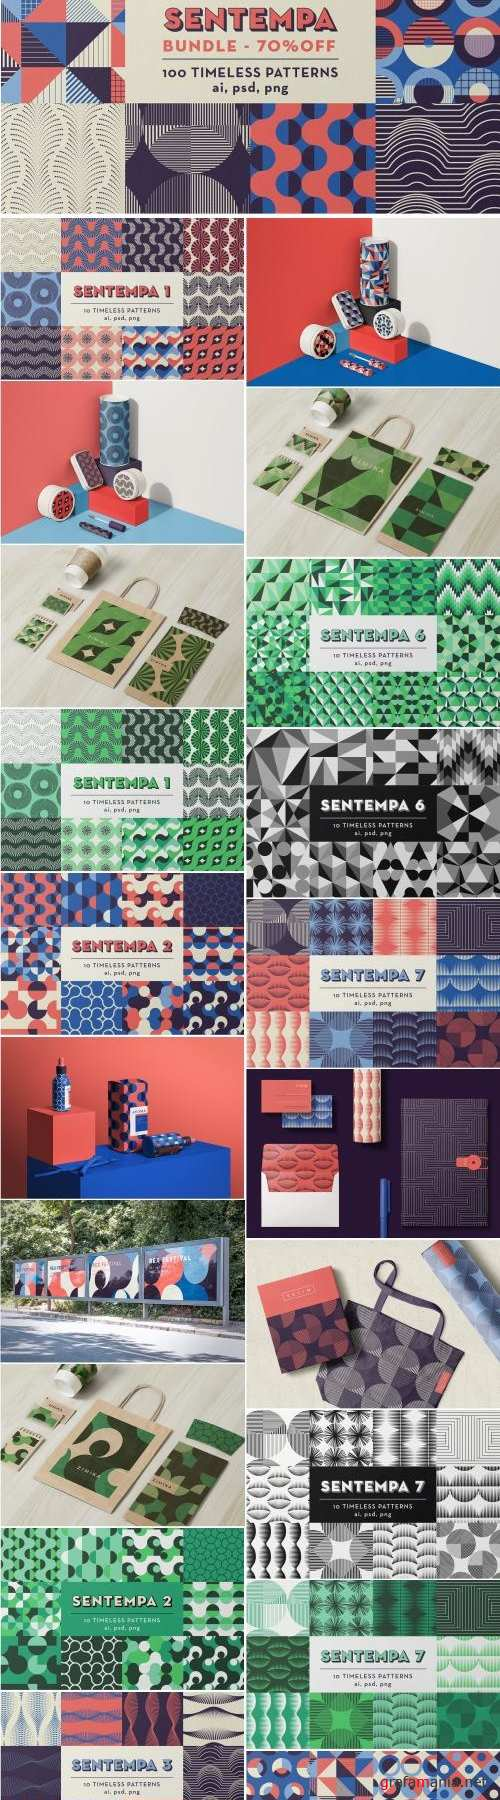 SENTEMPA BUNDLE 1: 100 Geo Patterns - 2429781